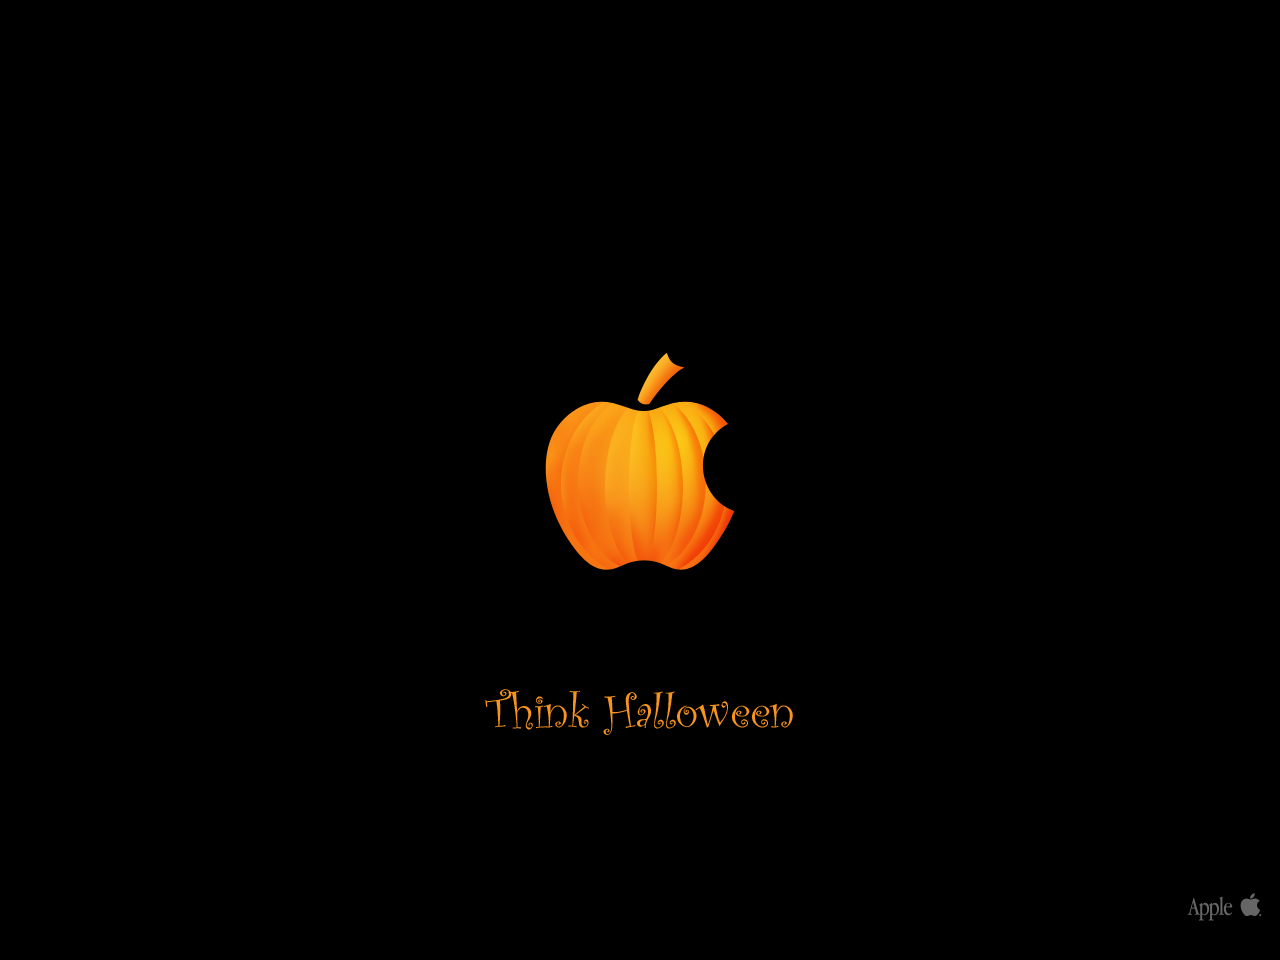 Halloween desktop wallpaper 3